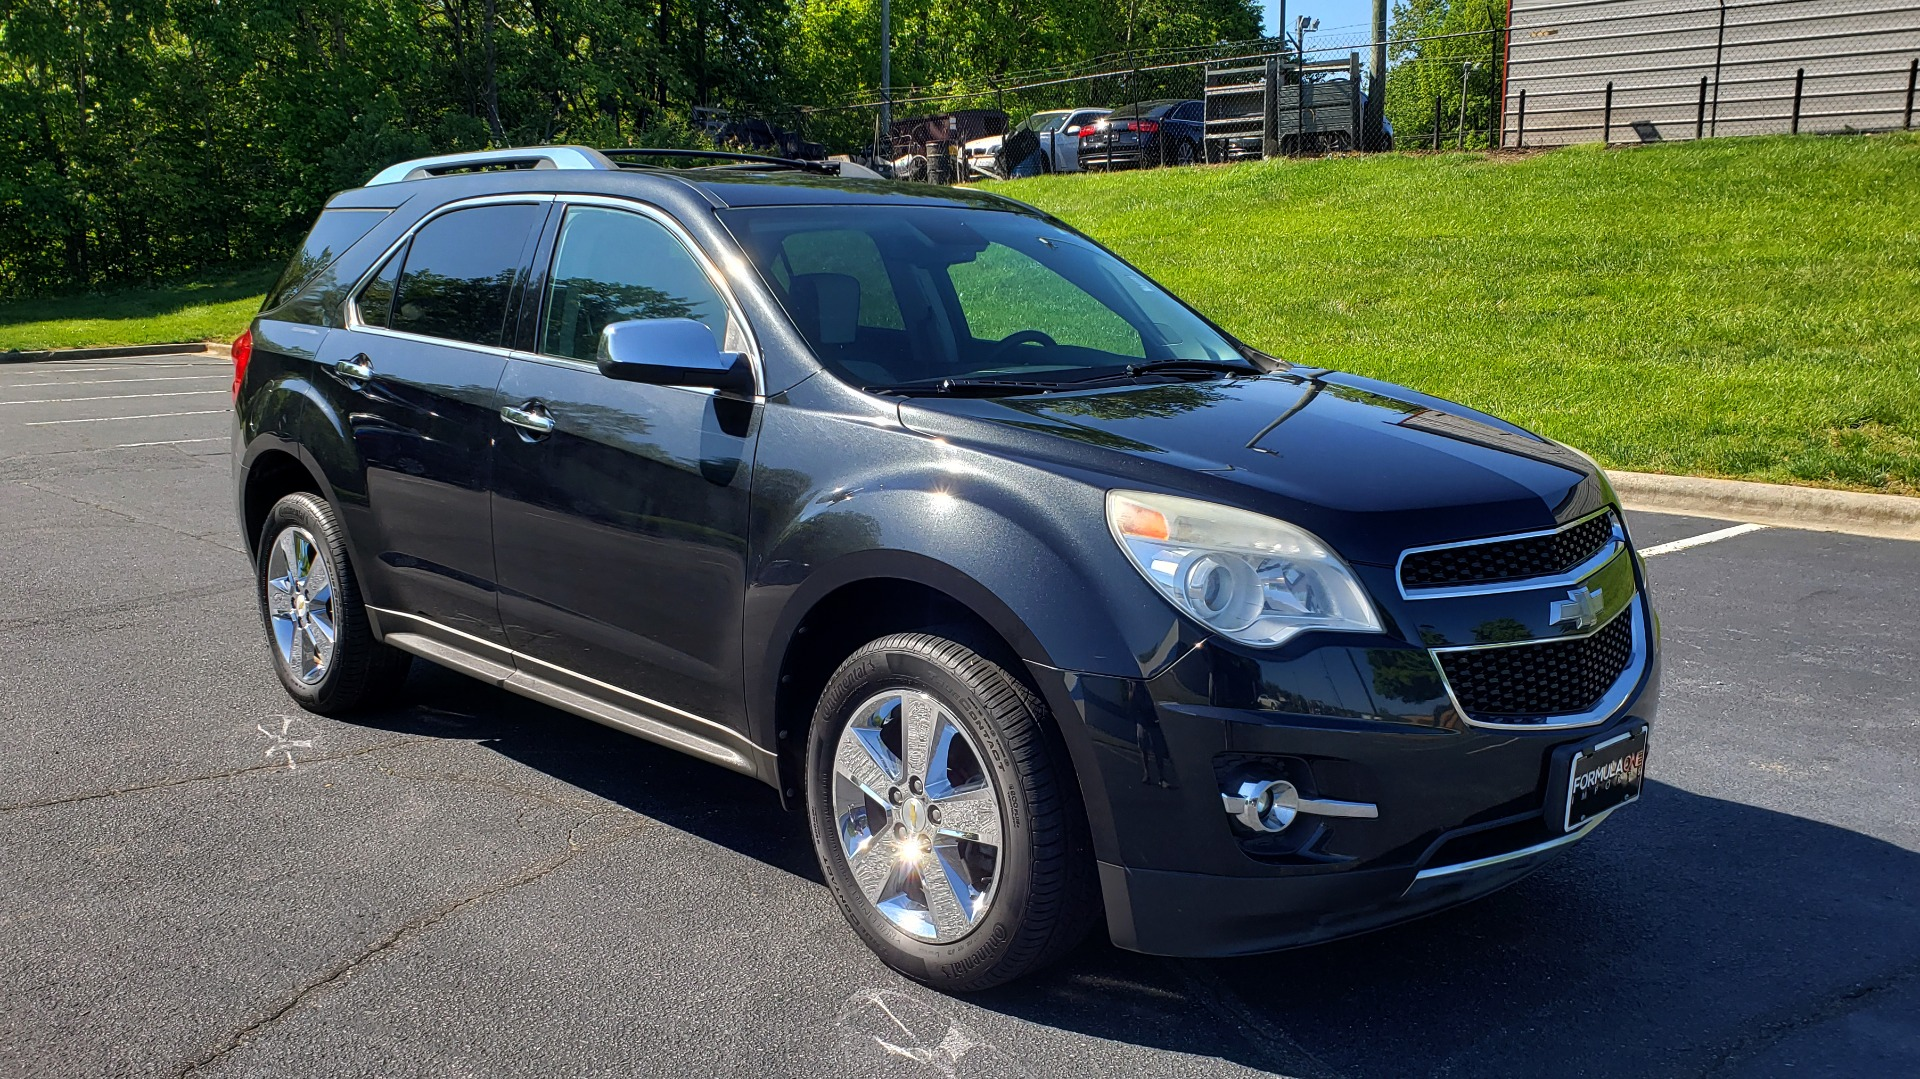 Used 2012 Chevrolet EQUINOX LTZ / FWD / 3.0L V6 / NAV / SUNROOF / PIONEER SND / REARVIEW for sale Sold at Formula Imports in Charlotte NC 28227 4